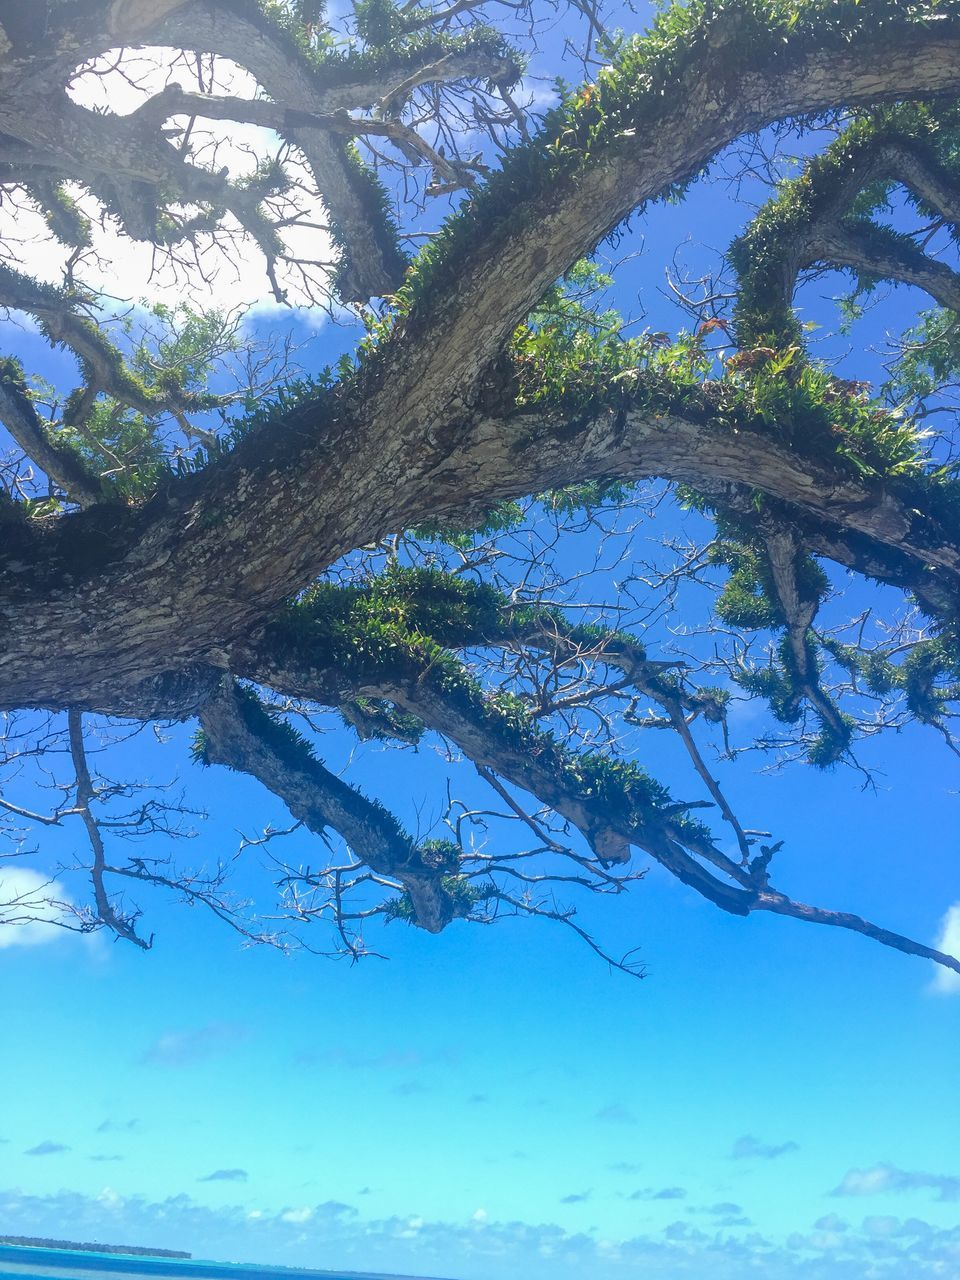 tree, nature, day, branch, low angle view, no people, beauty in nature, animals in the wild, tranquility, outdoors, growth, animal themes, one animal, tree trunk, scenics, water, sky